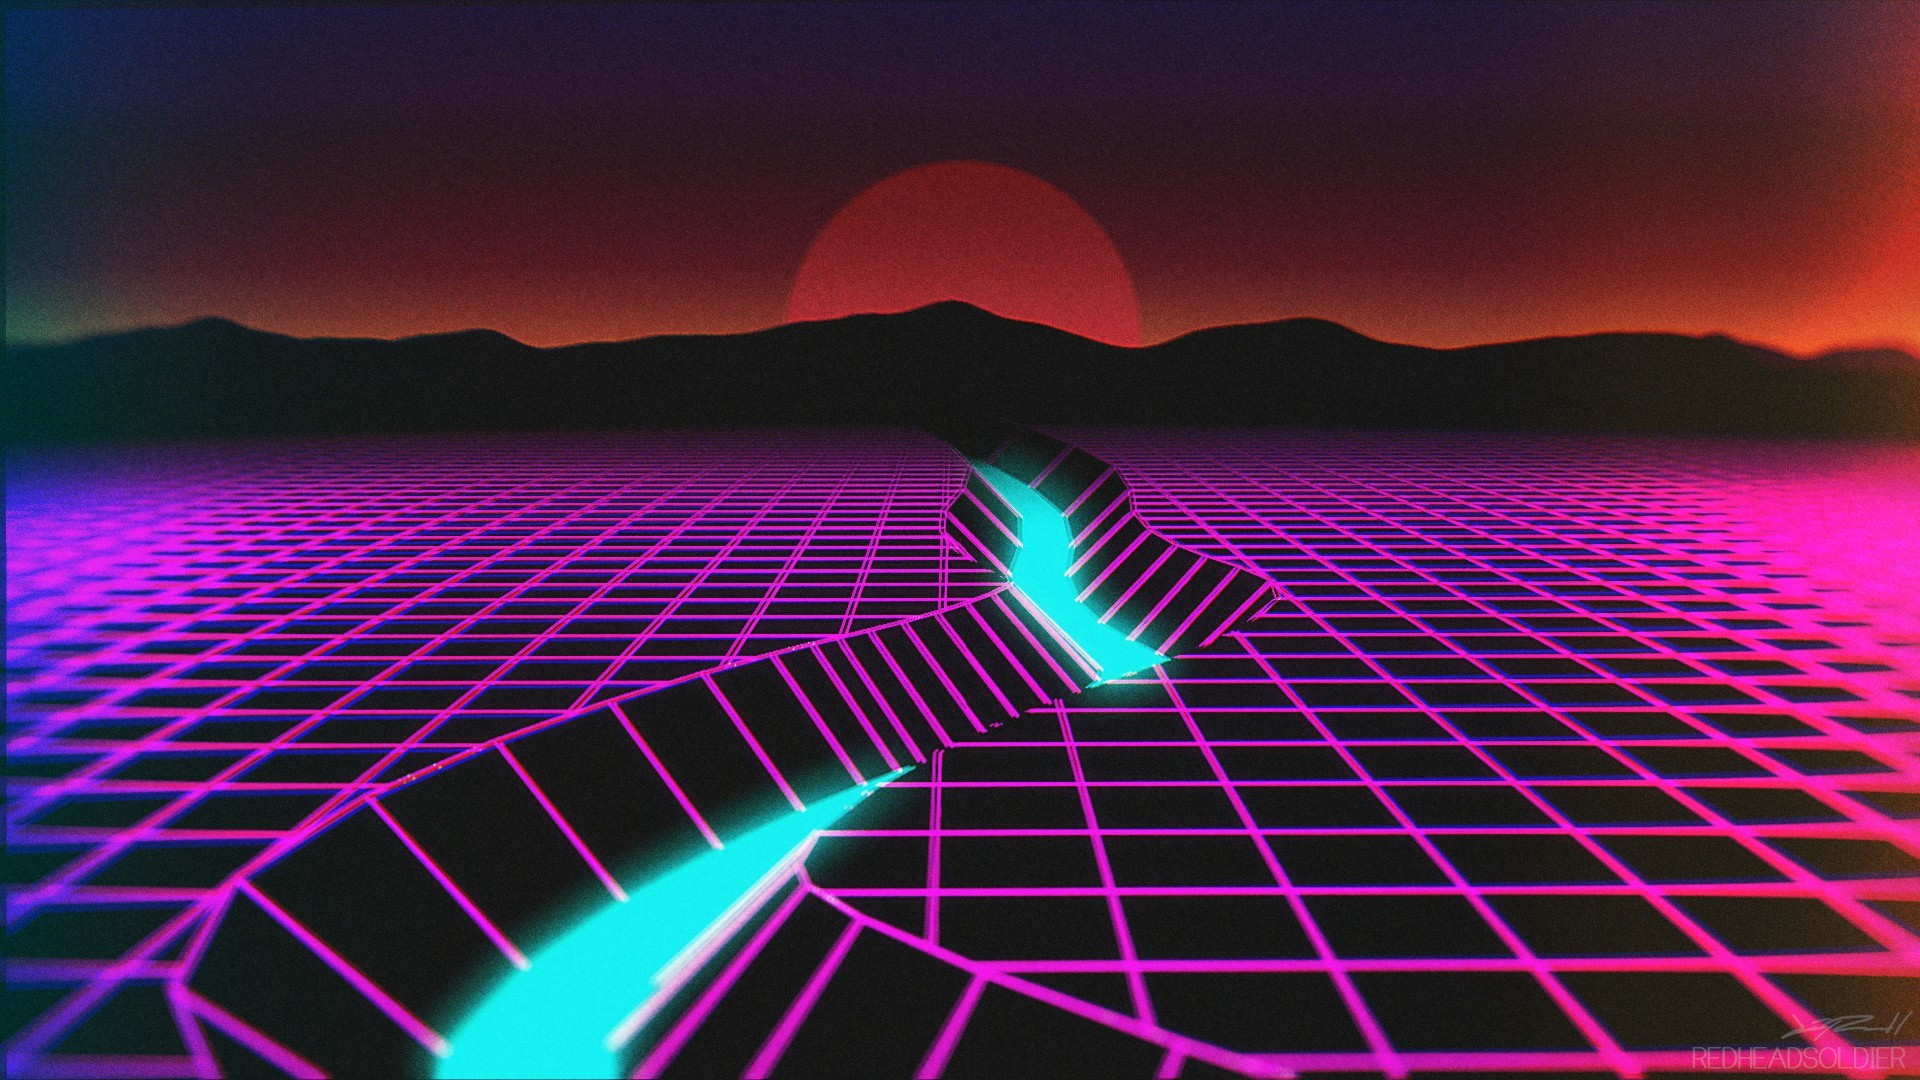 Iphone 5 Hd Wallpapers 1080p: Synthwave Wallpaper ·① Download Free High Resolution